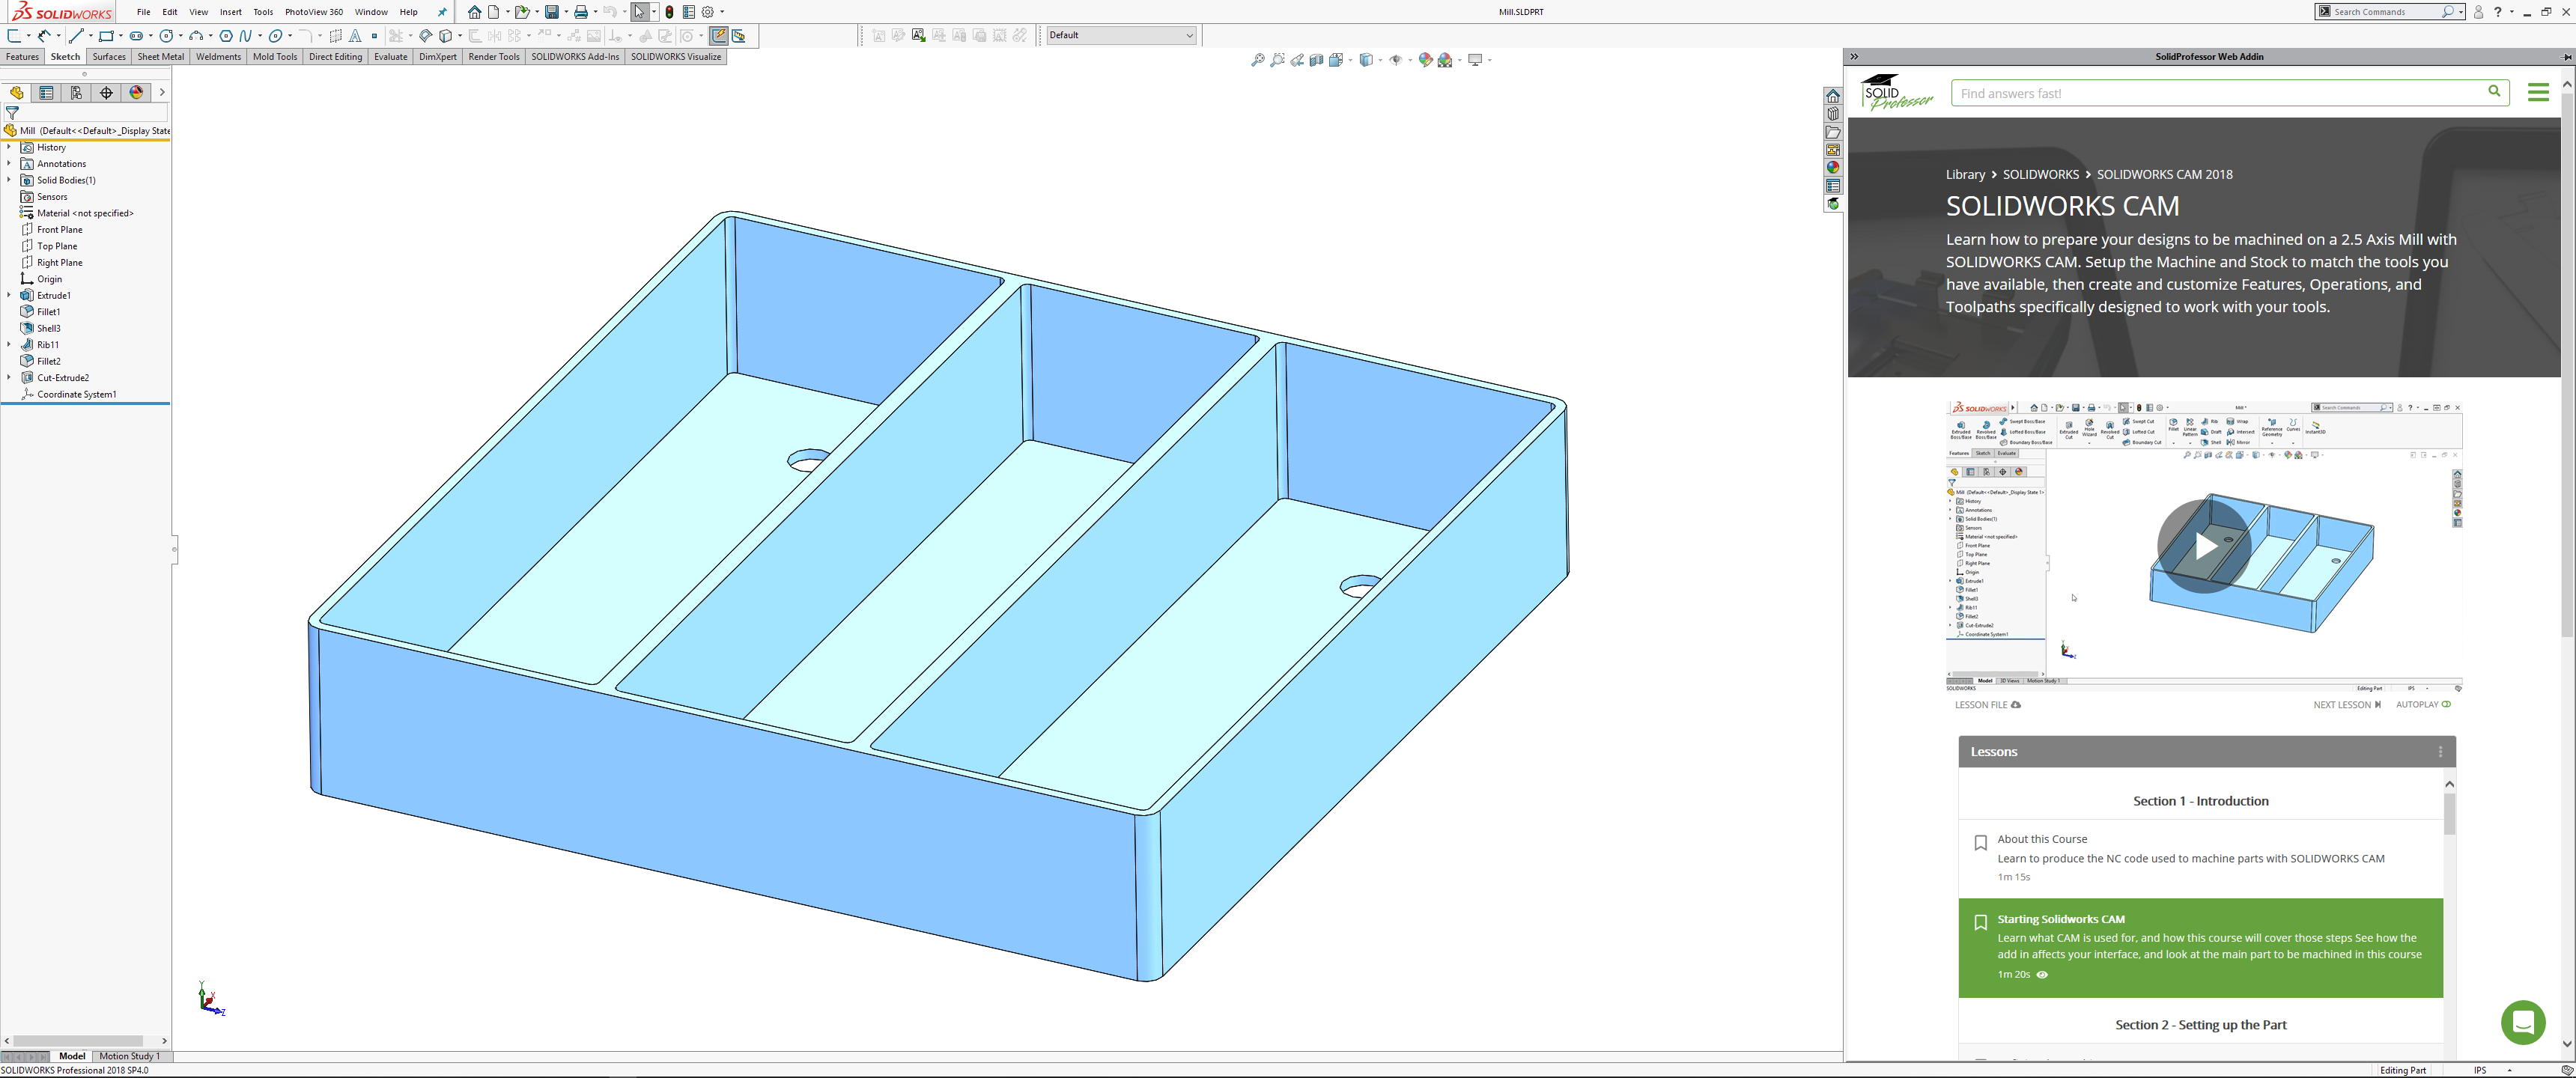 SolidProfessor – Now with SOLIDWORKS CAM & So Much More